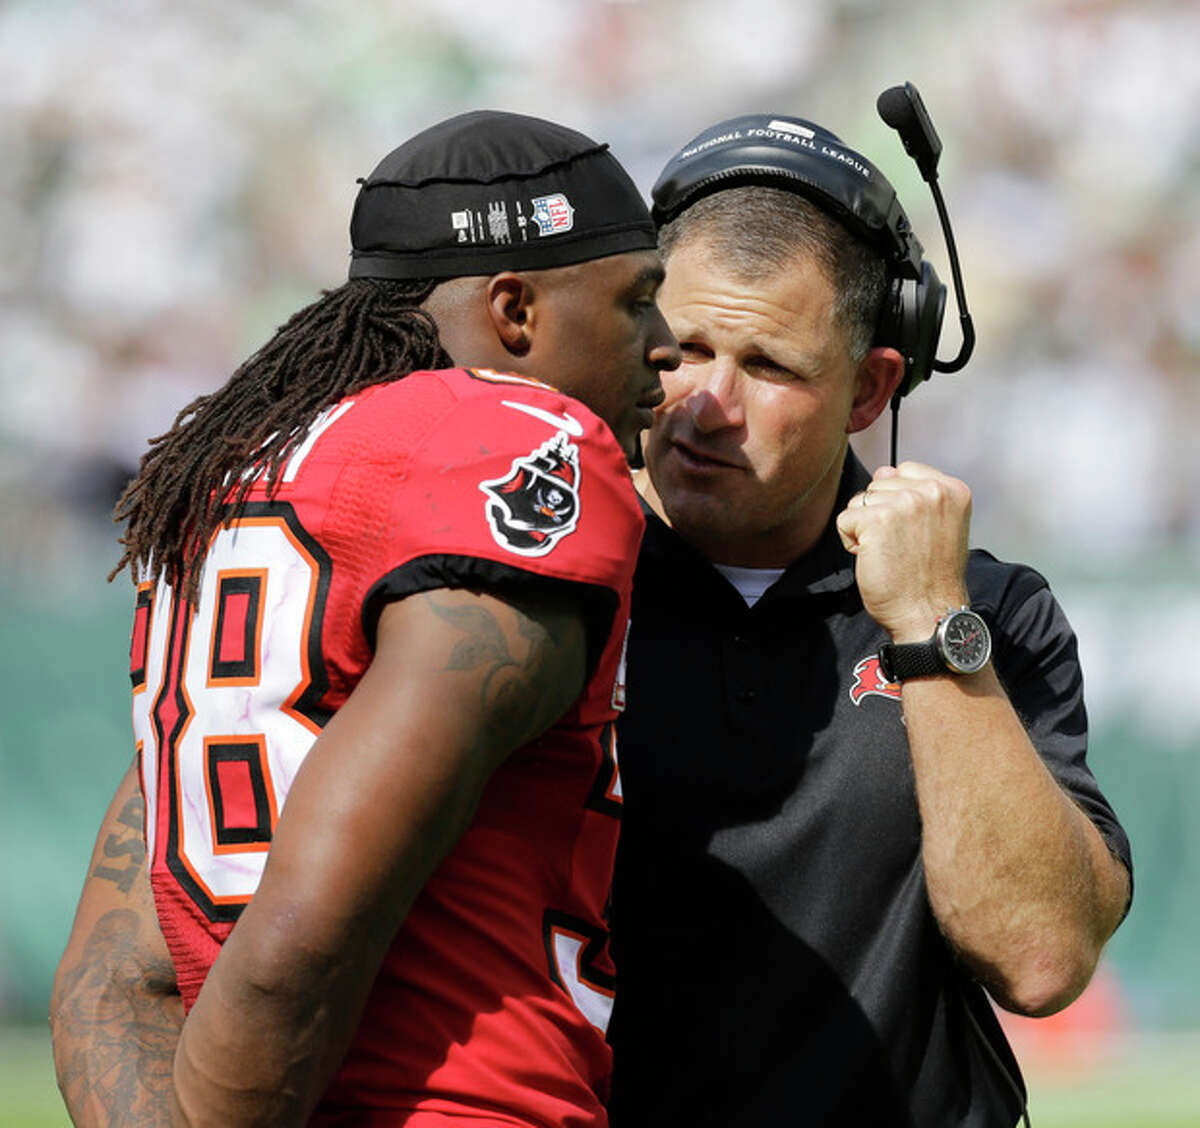 Tampa Bay Buccaneers coach Greg Schiano, right, talks to free safety Dashon Goldson in the second half of an NFL football game against the New York Jets, Sunday, Sept. 8, 2013, in East Rutherford, N.J. (AP Photo/Mel Evans)